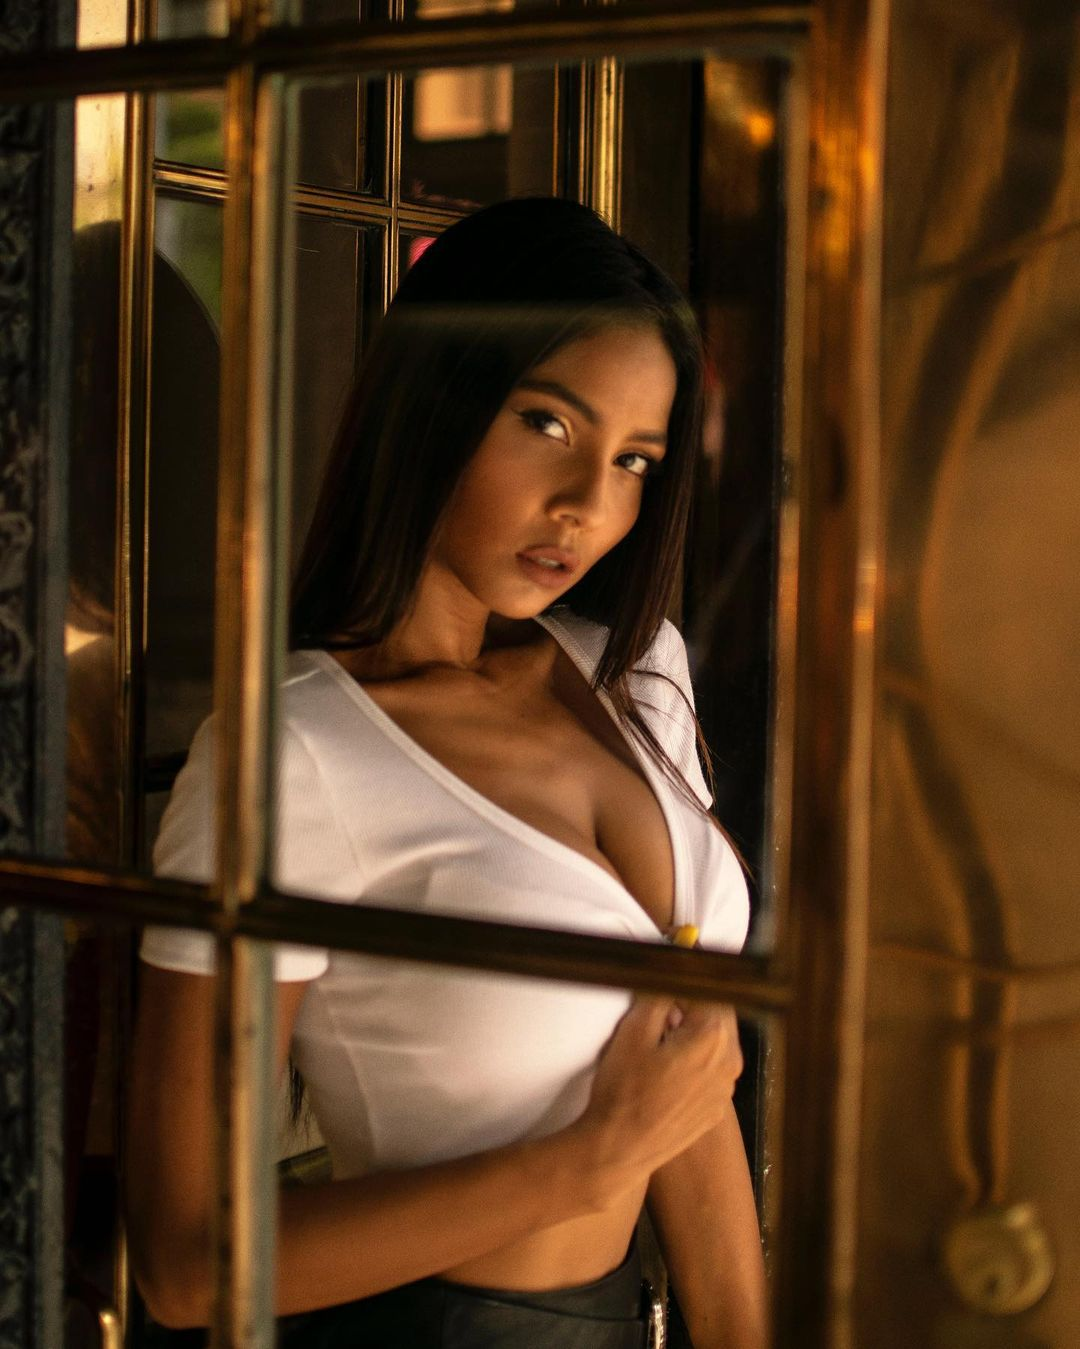 Maria Vicario is a model that appeared in Myke Towers and Rauw Alejandro and Lunay and Brytiago and Revol Fantasia Sexual